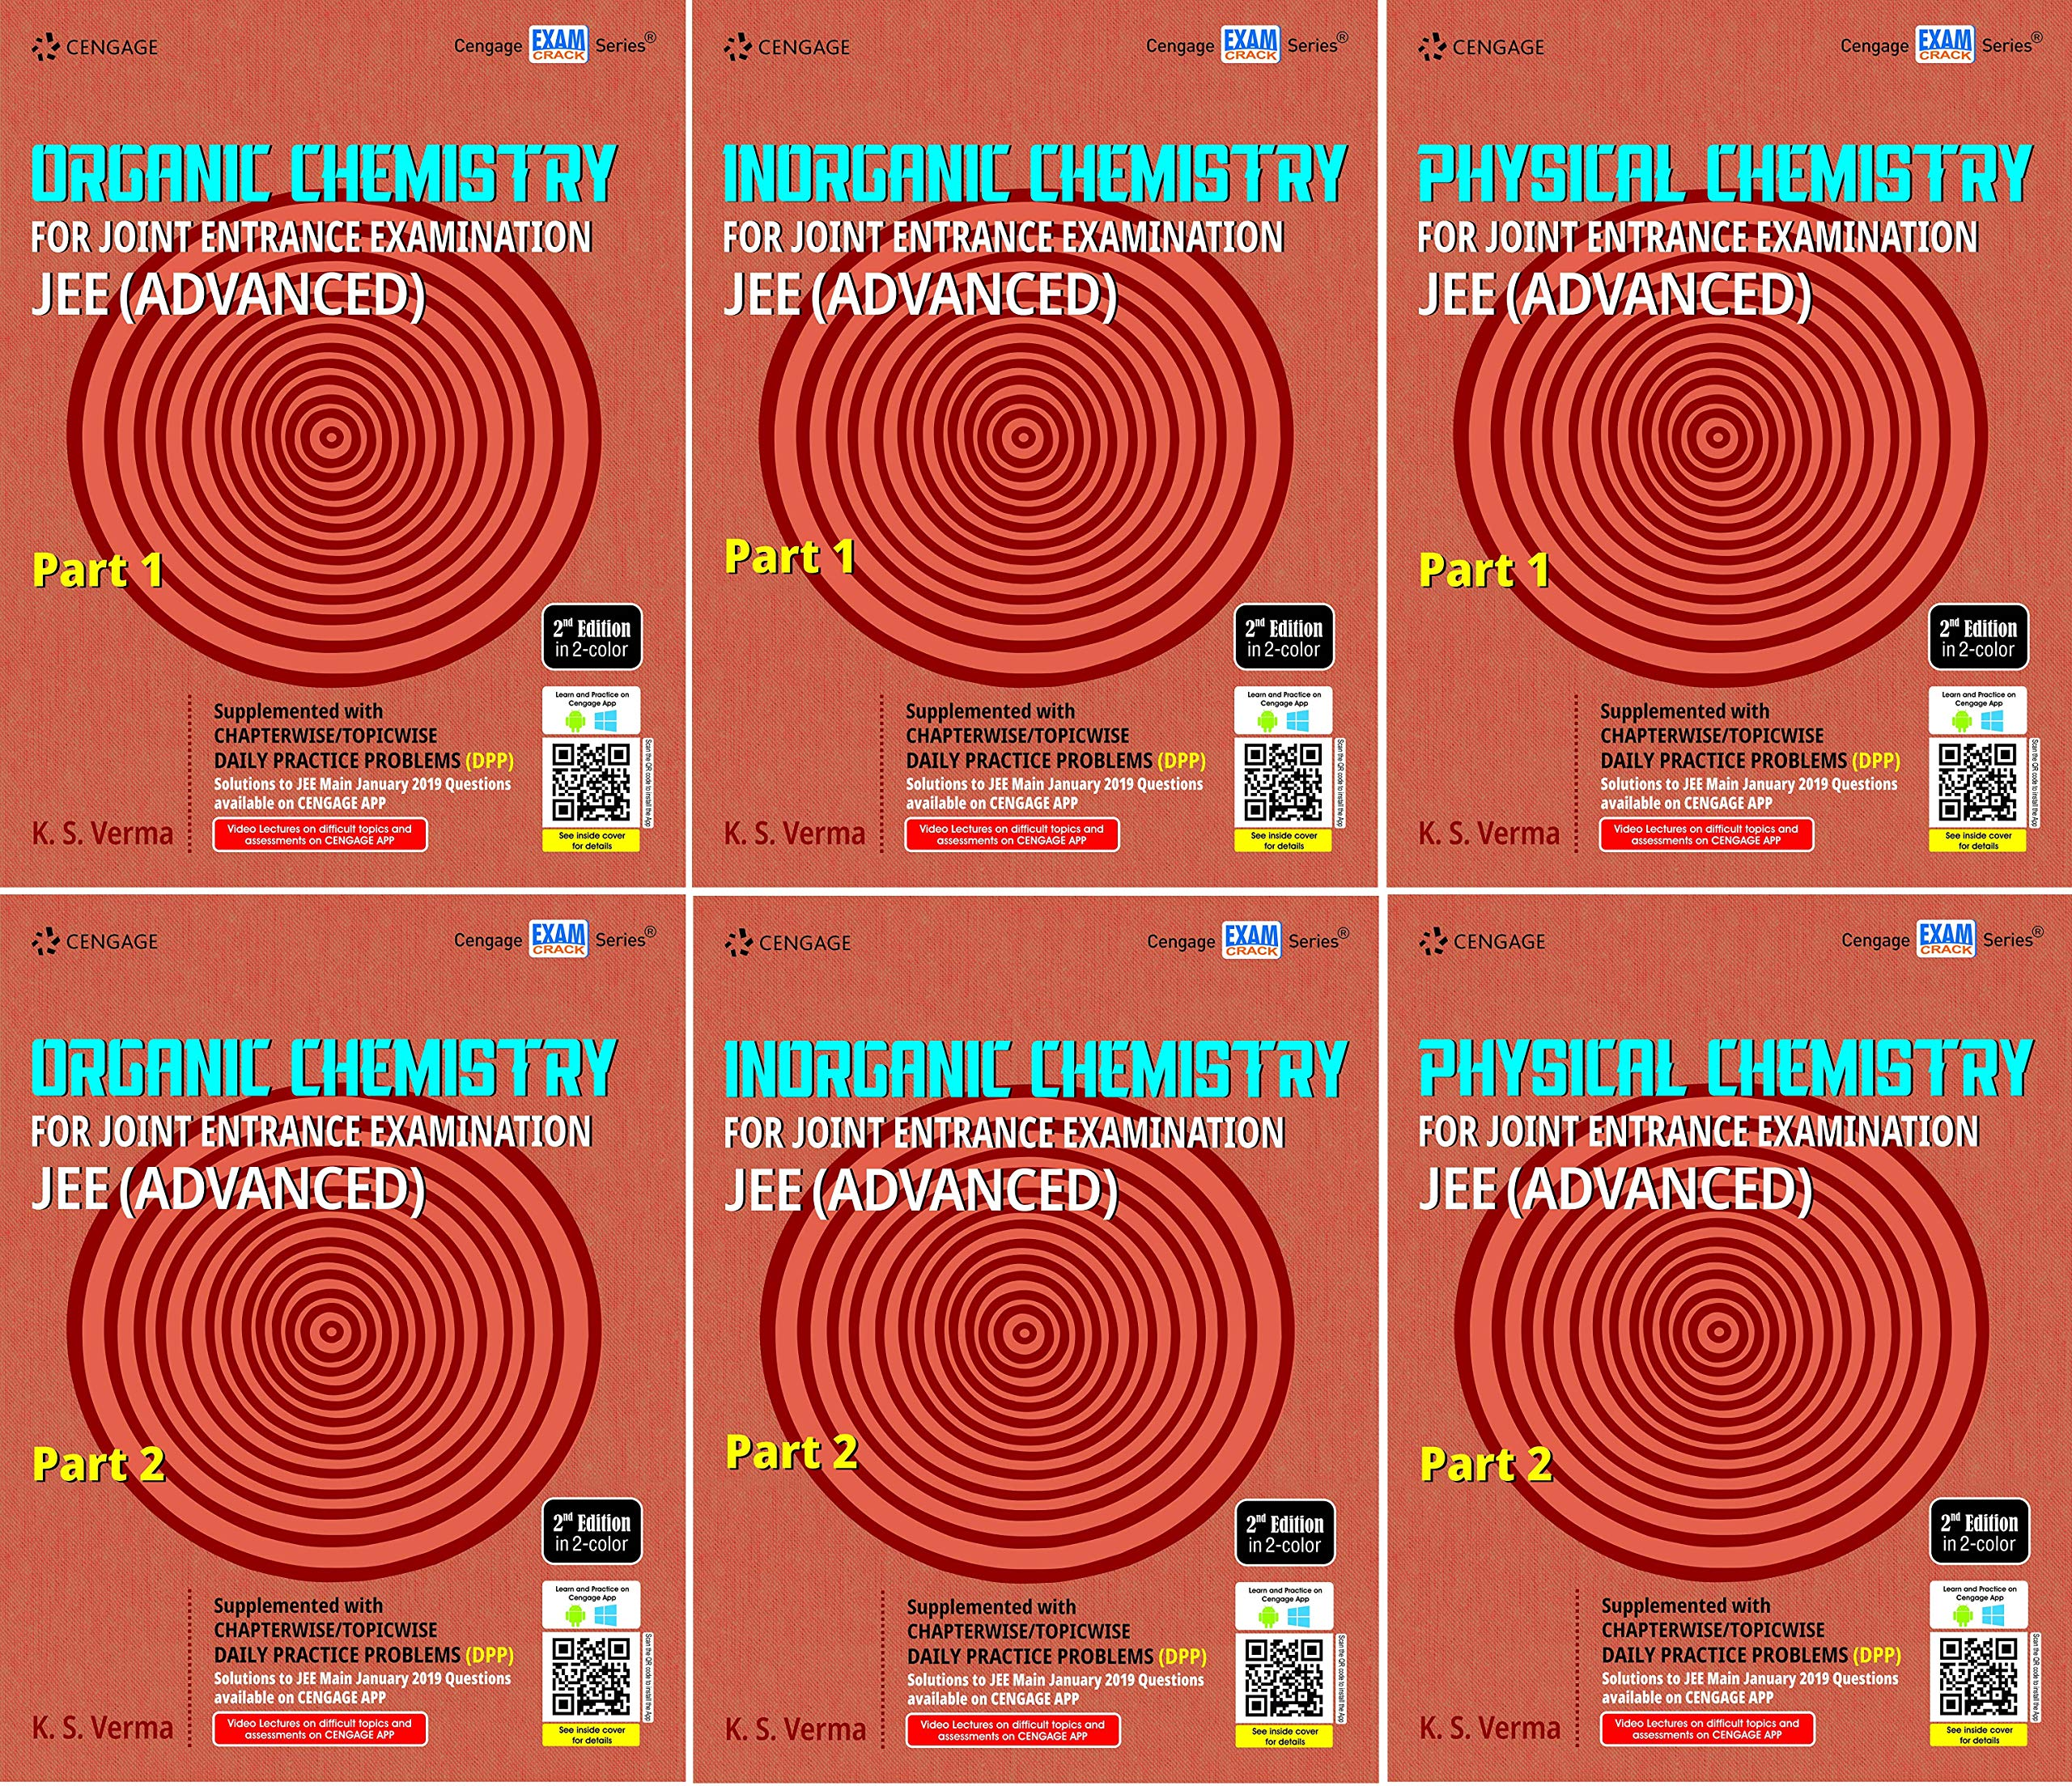 Cengage Chemistry 6 Books set for JEE ADVANCED